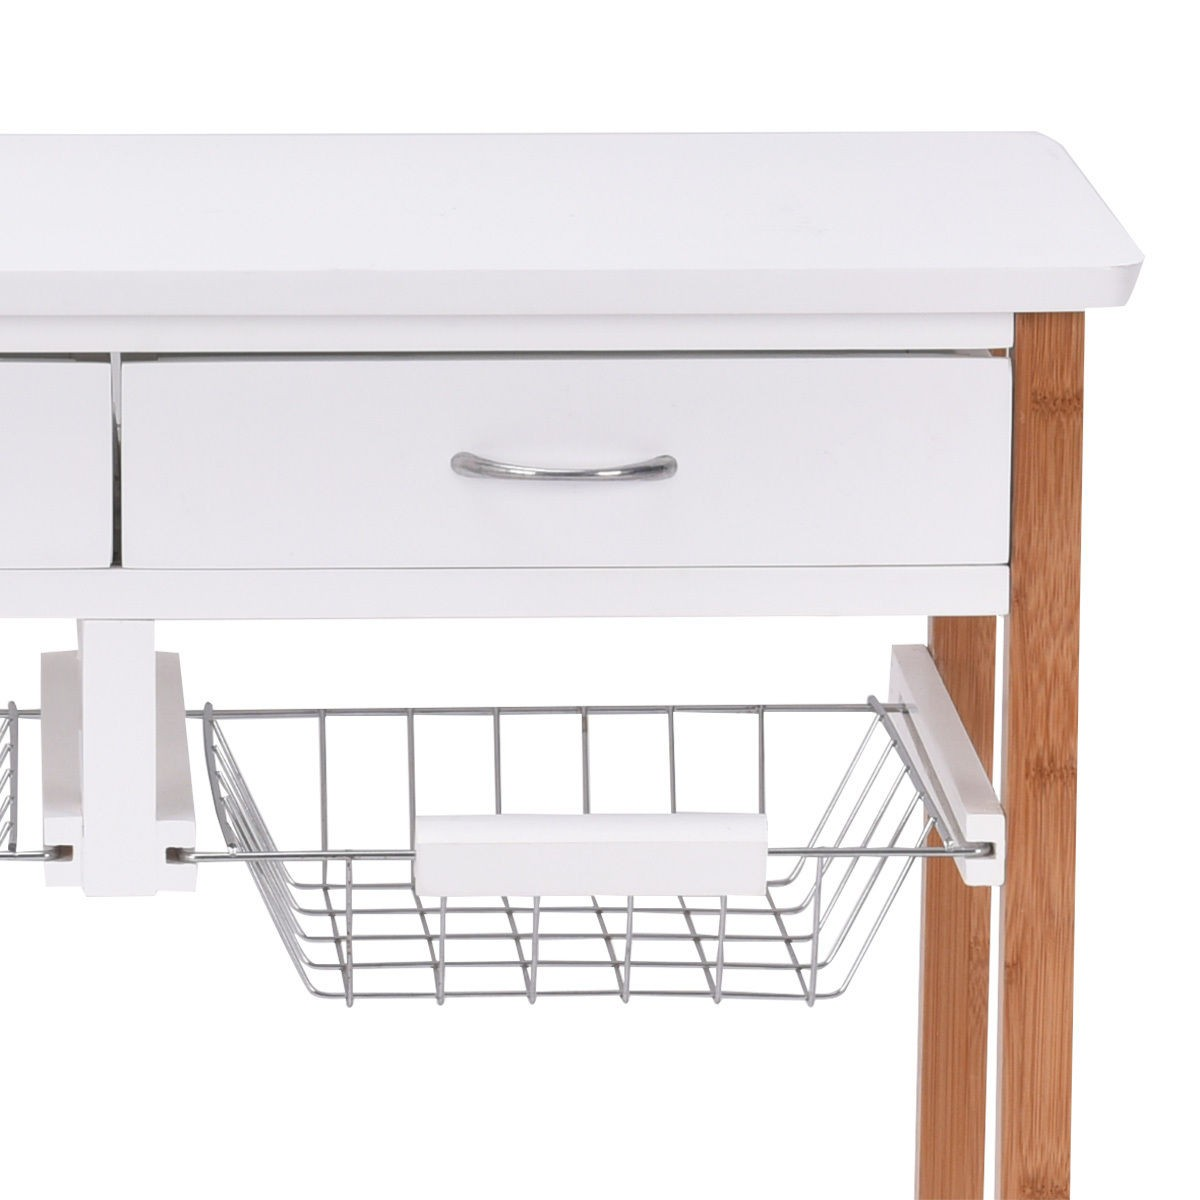 kitchen sliding baskets drawer cabinet base rolling wood trolley cart island storage basket